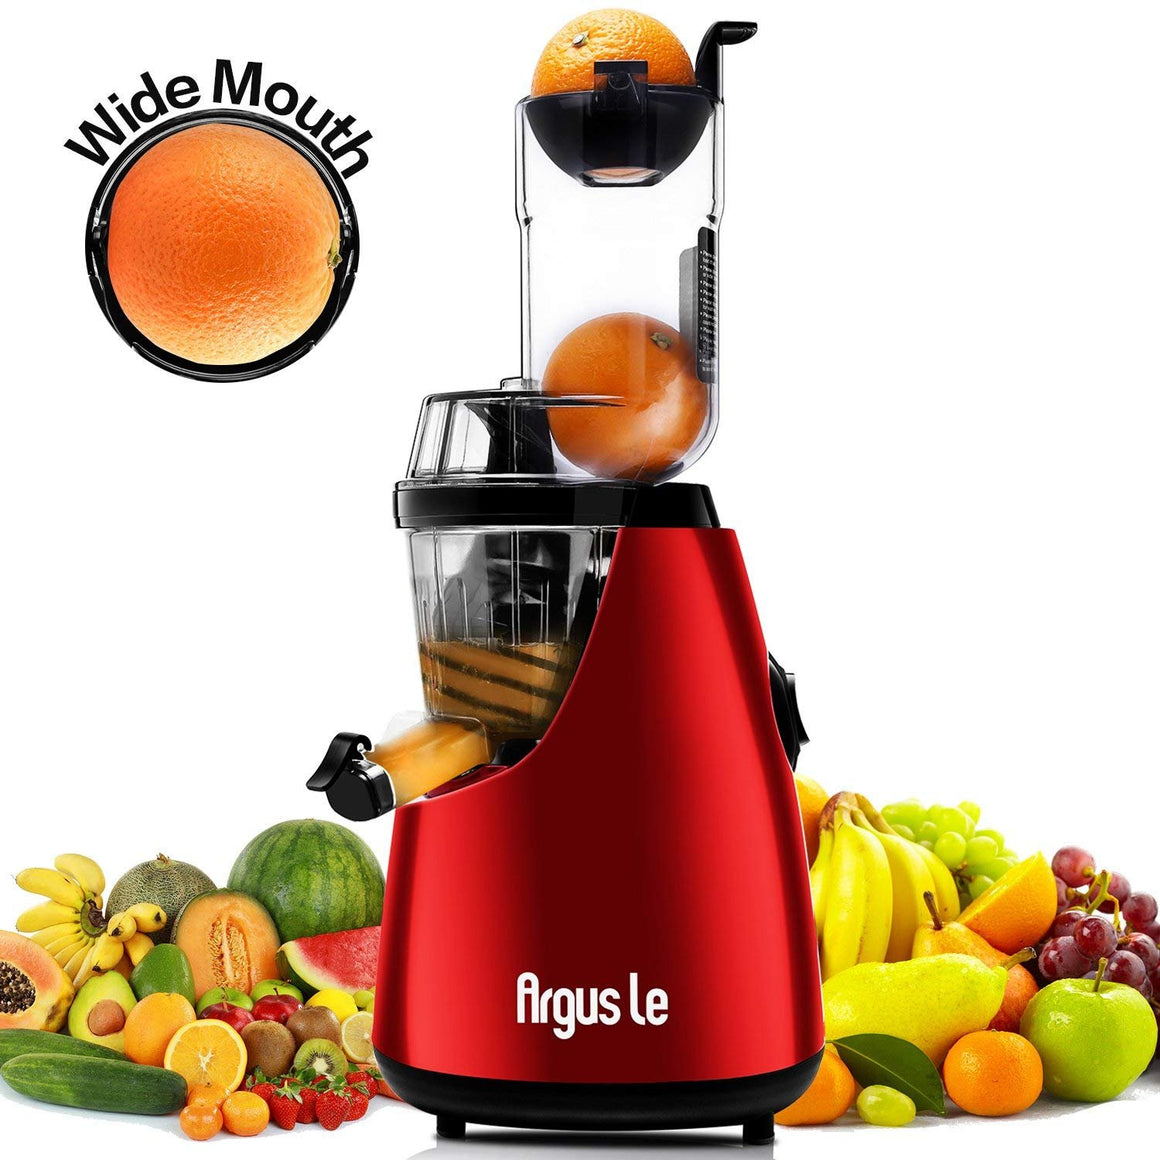 "Argus Le 3"" Big Mouth Whole Slow Masticating Juicer with Quiet Motor, Low Speed Cold Press Juice Extractor, 75mm Wide Chute Easy Cleaning Vertical Juicer Machine for High Nutrient Fruit and Veggies"